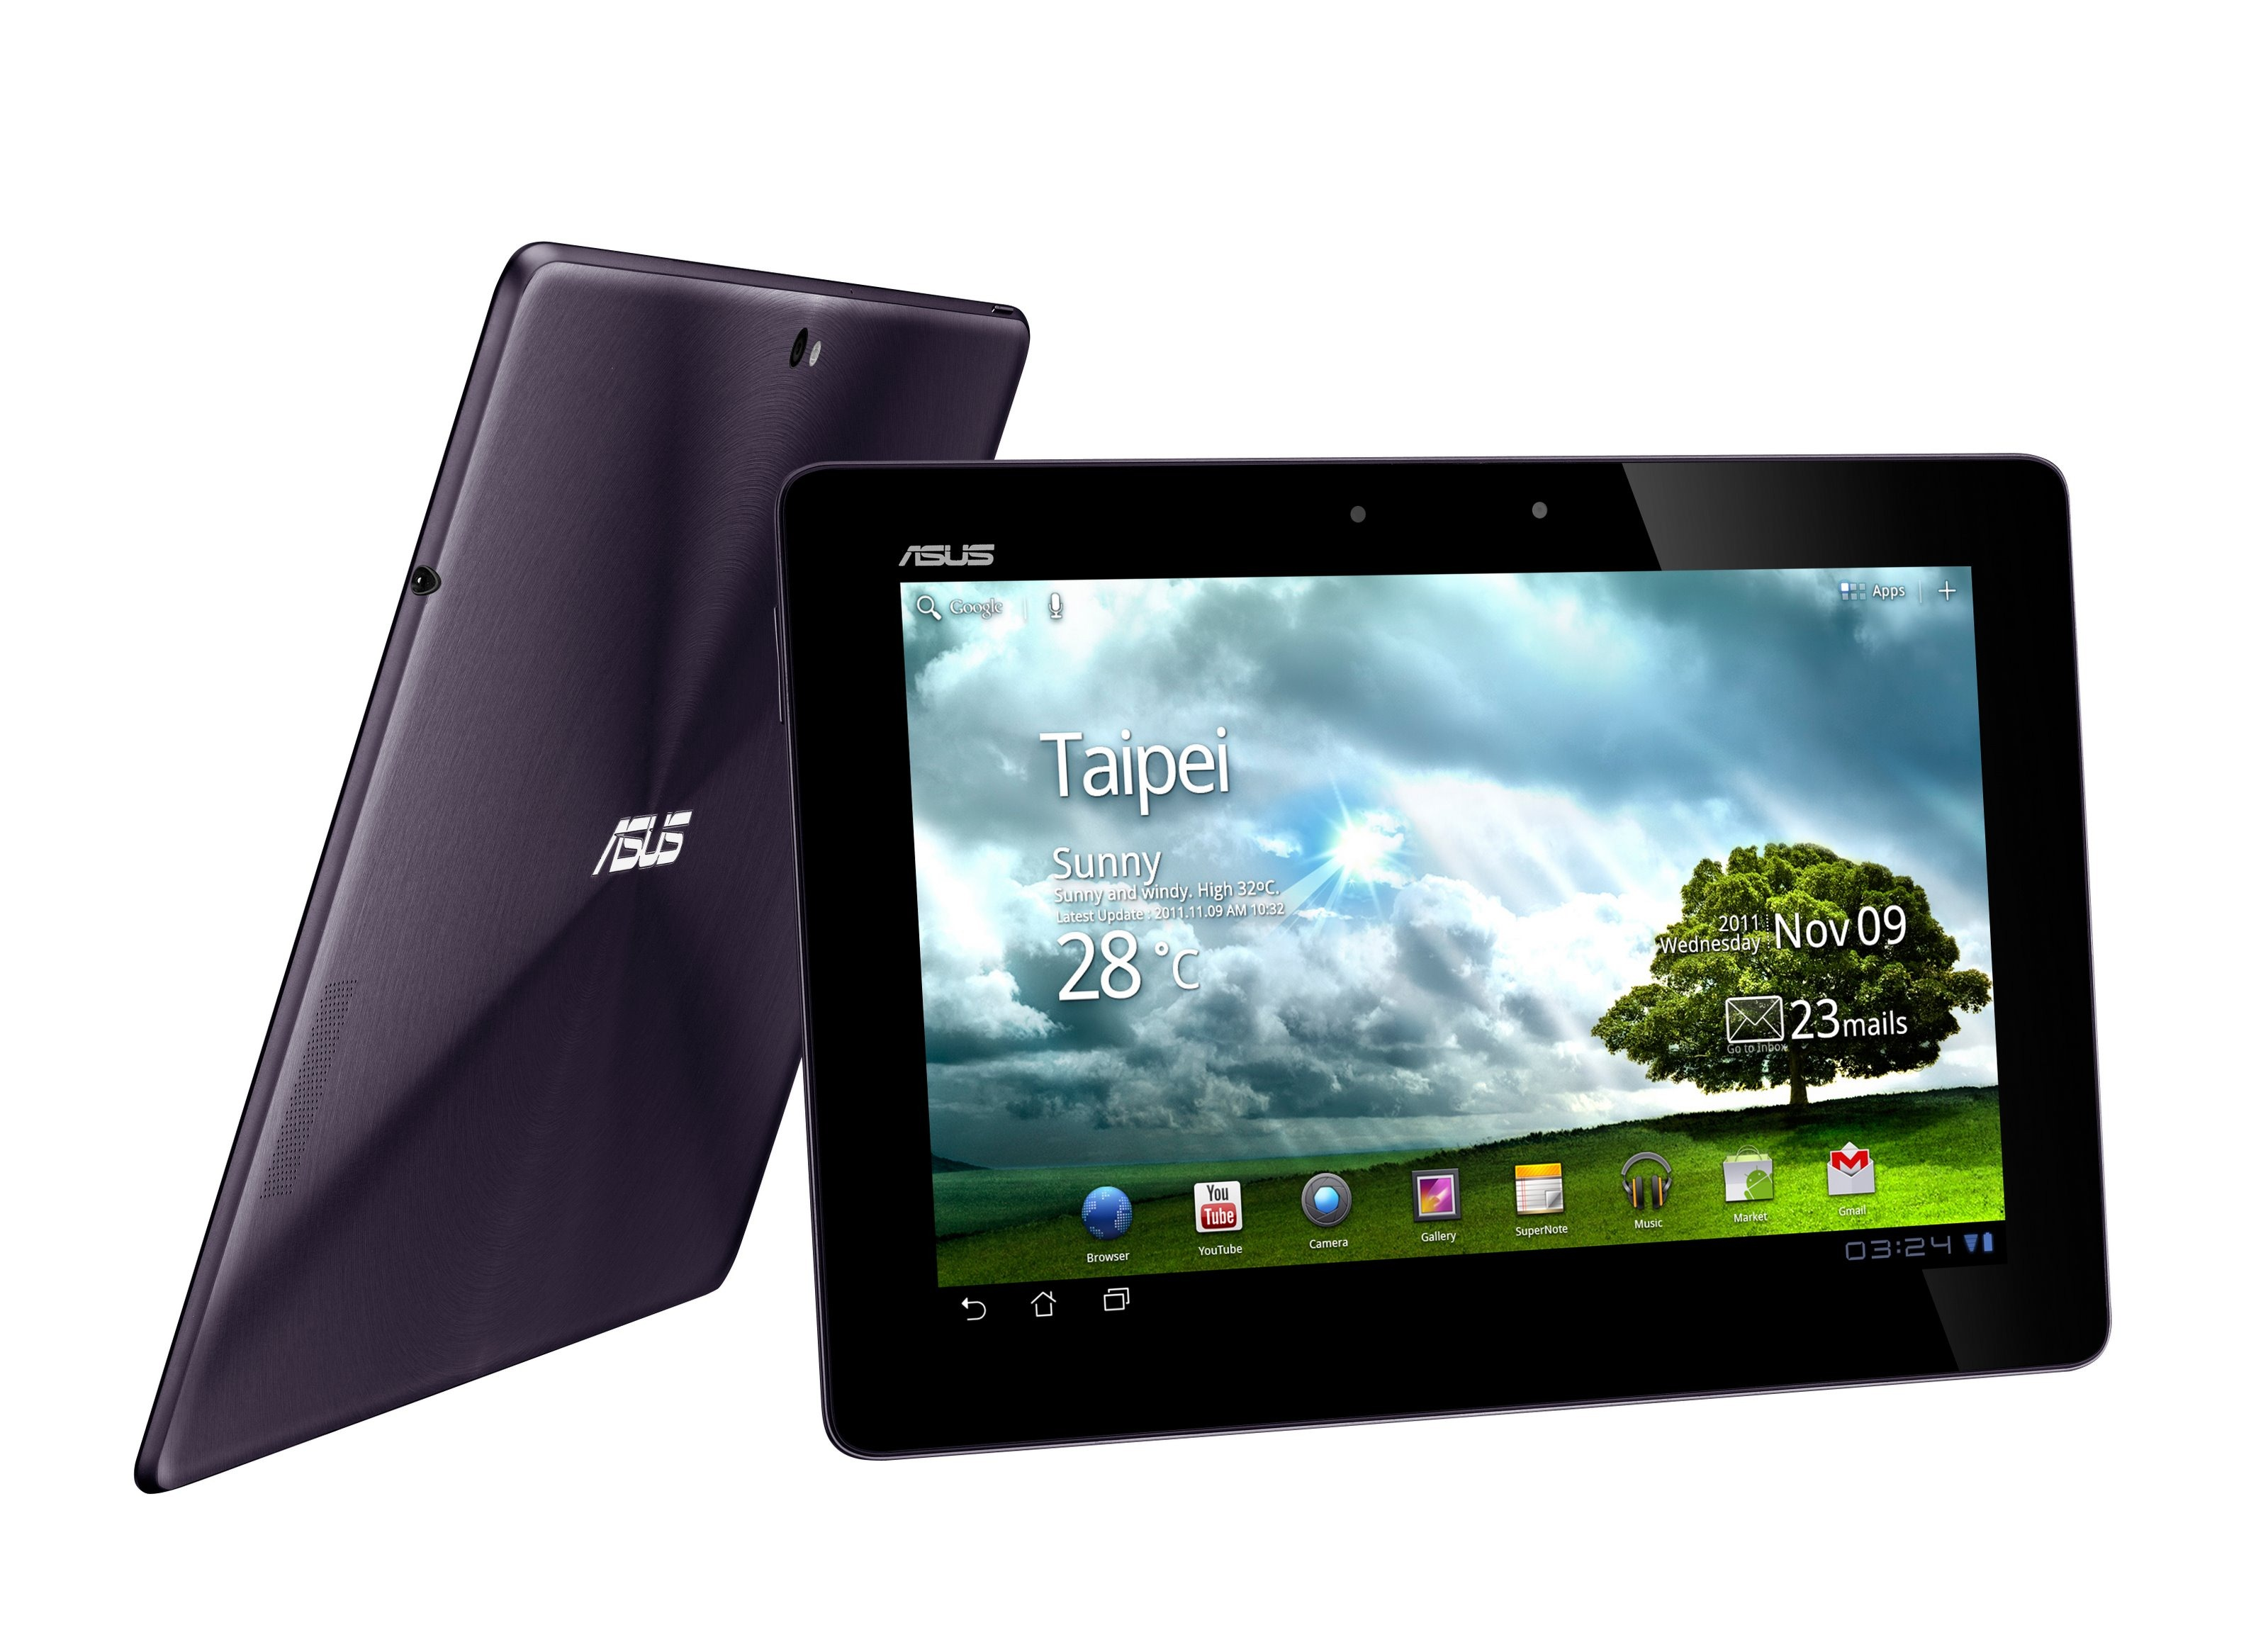 PR ASUS Eee Pad Transformer Prime Front Amethyst Gray1